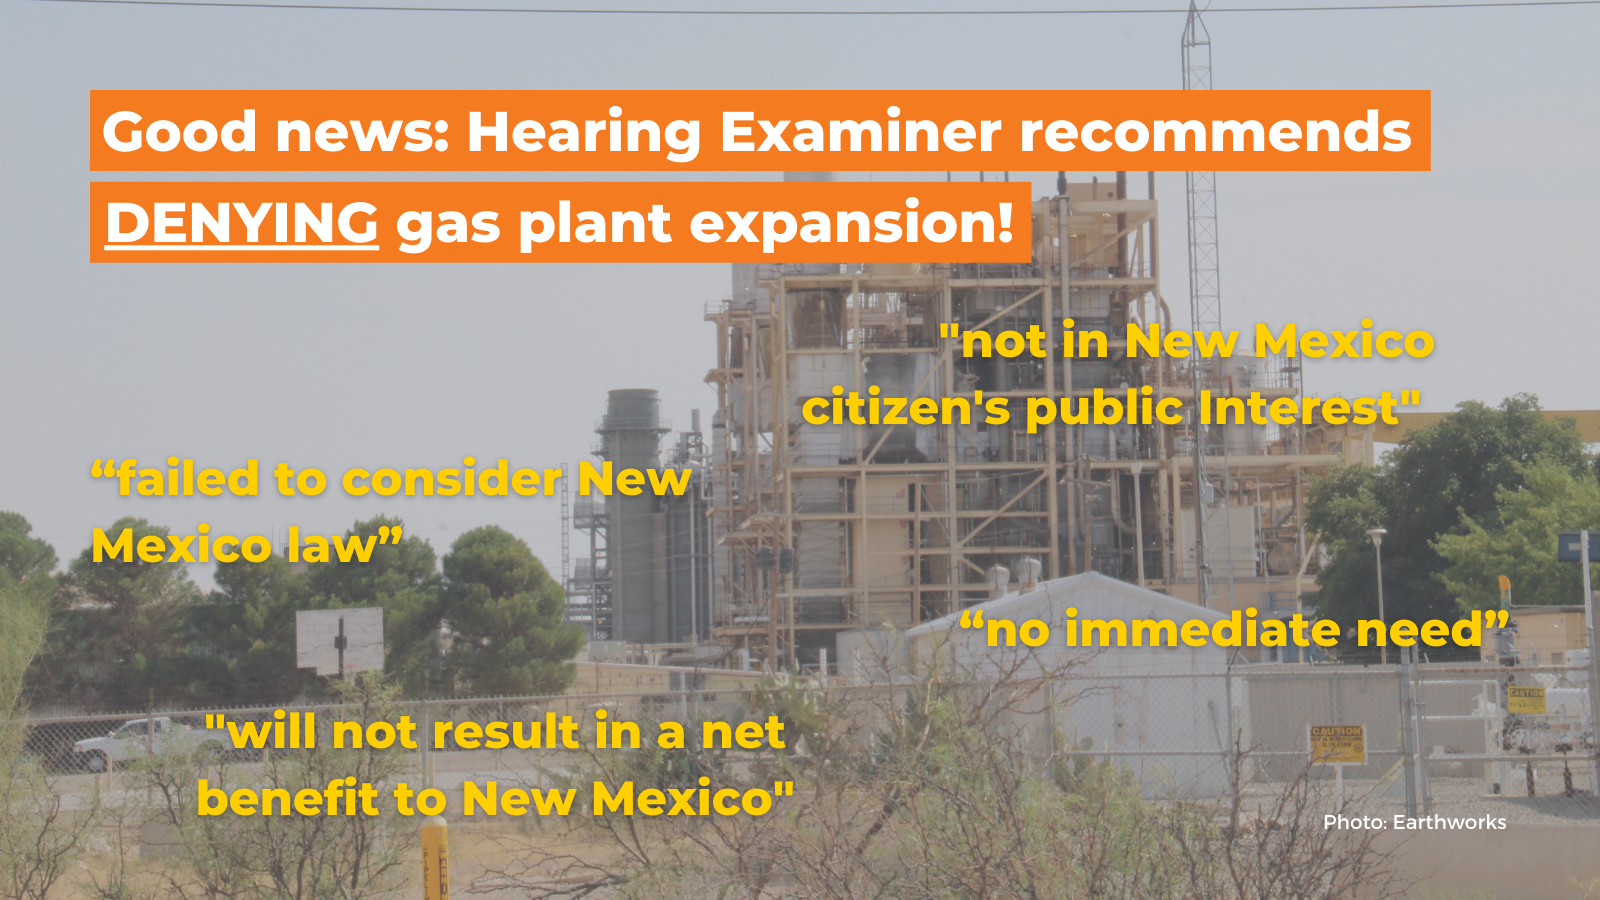 Hearing Examiner Recommends Denying Proposed El Paso Electric Gas Plant Expansion